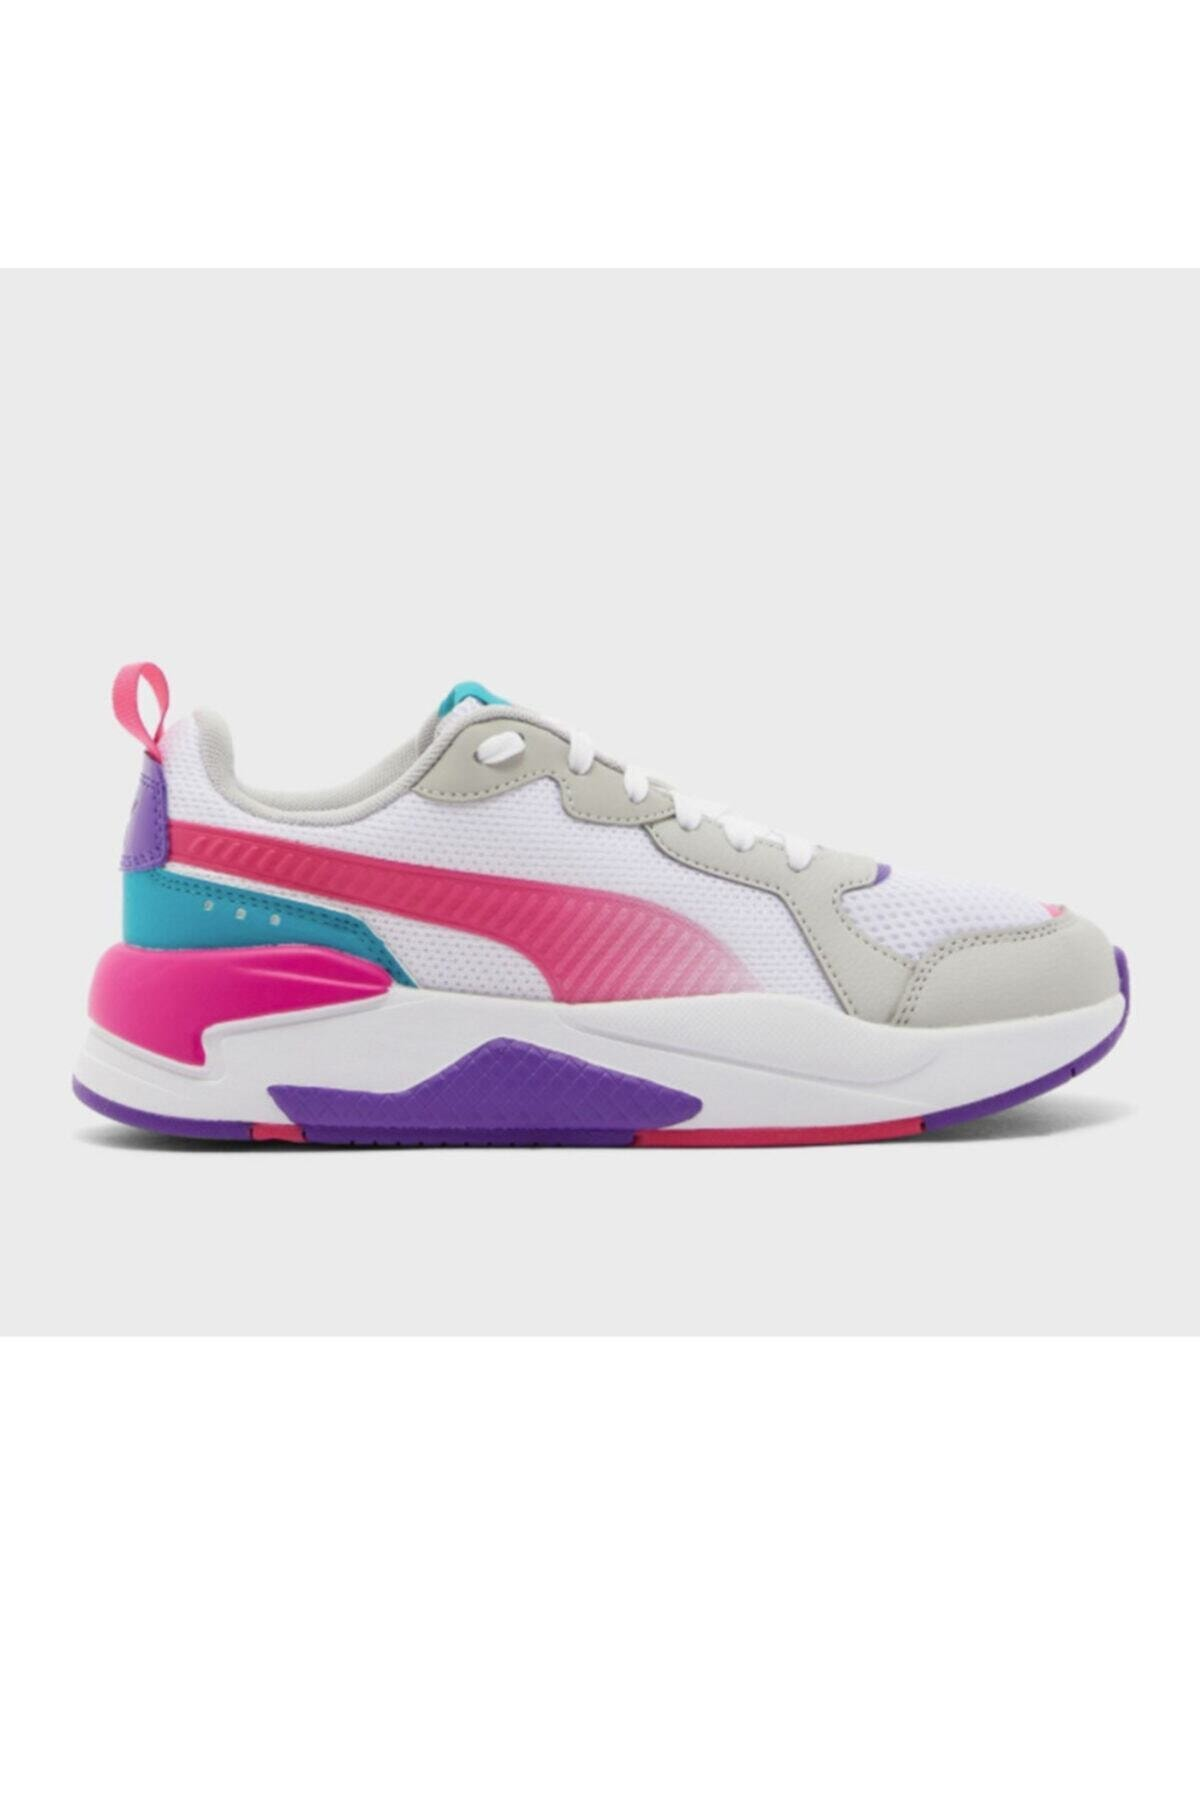 Puma Kadın Pembe X-ray Fantasic Plastic Wins Sneakers 1